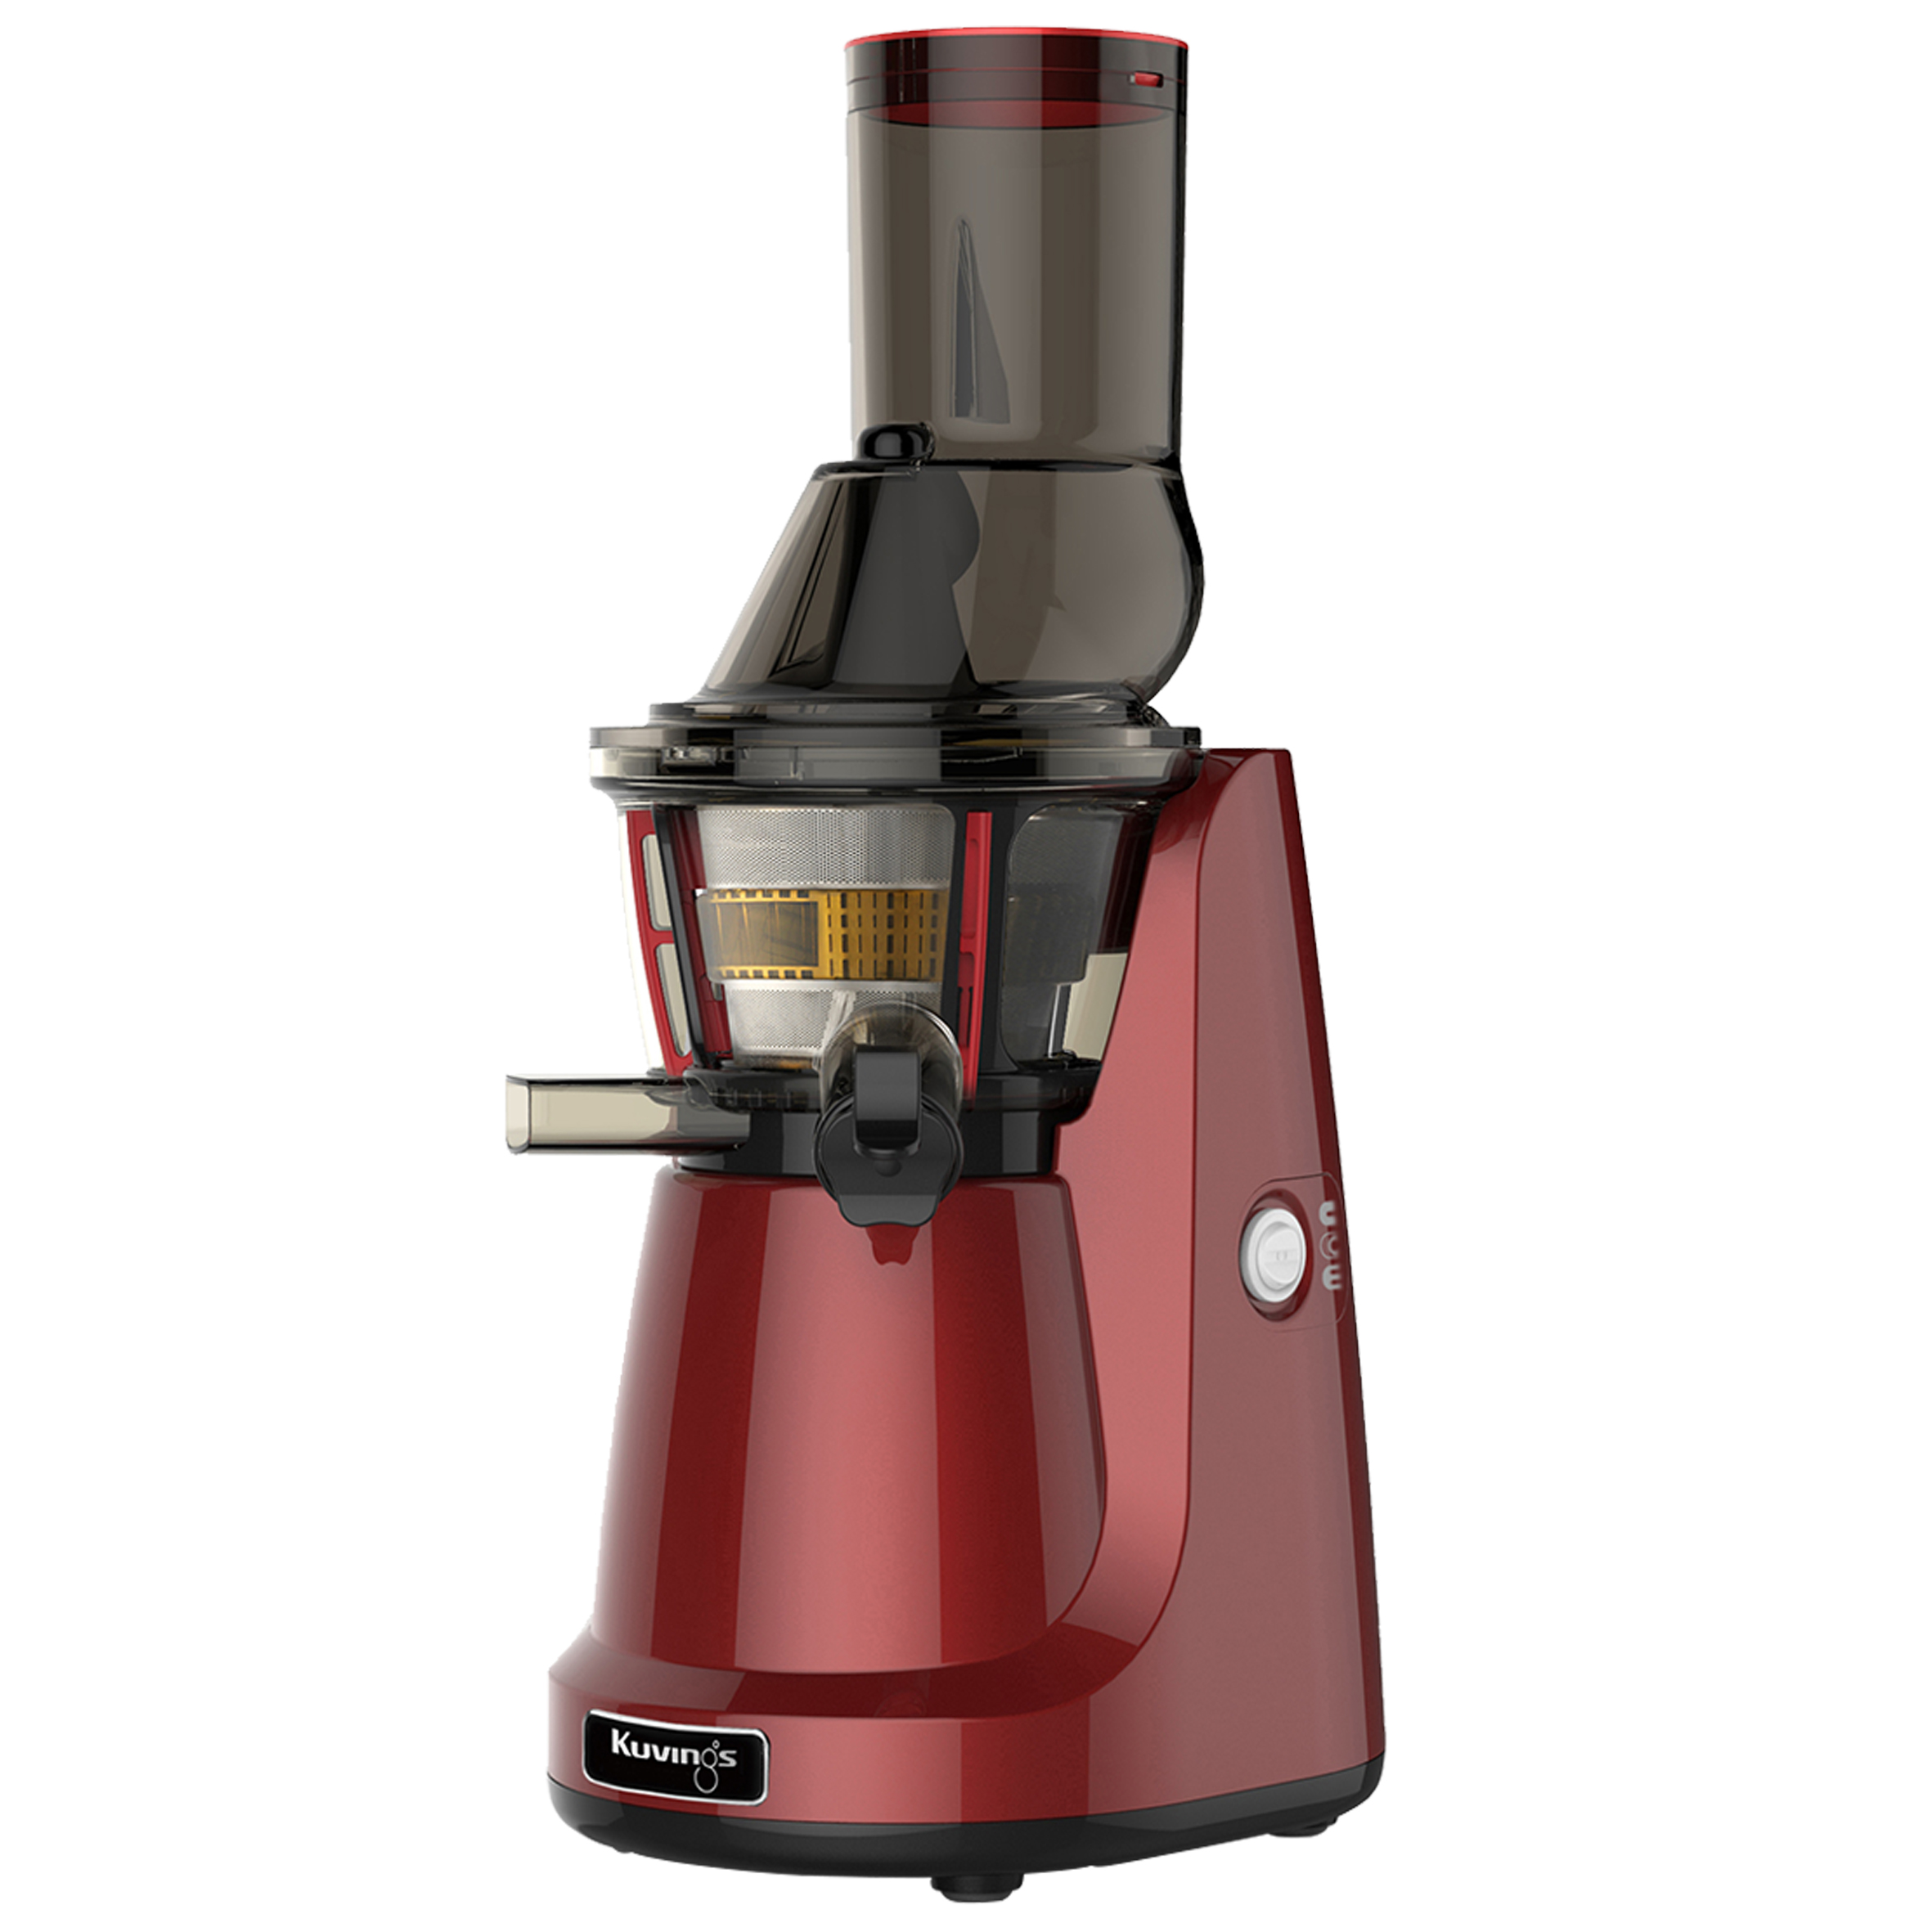 Kuvings Whole Slow Juicer Good Guys : Kuvings Whole Slow Juicer B3000 Reviews - ProductReview.com.au